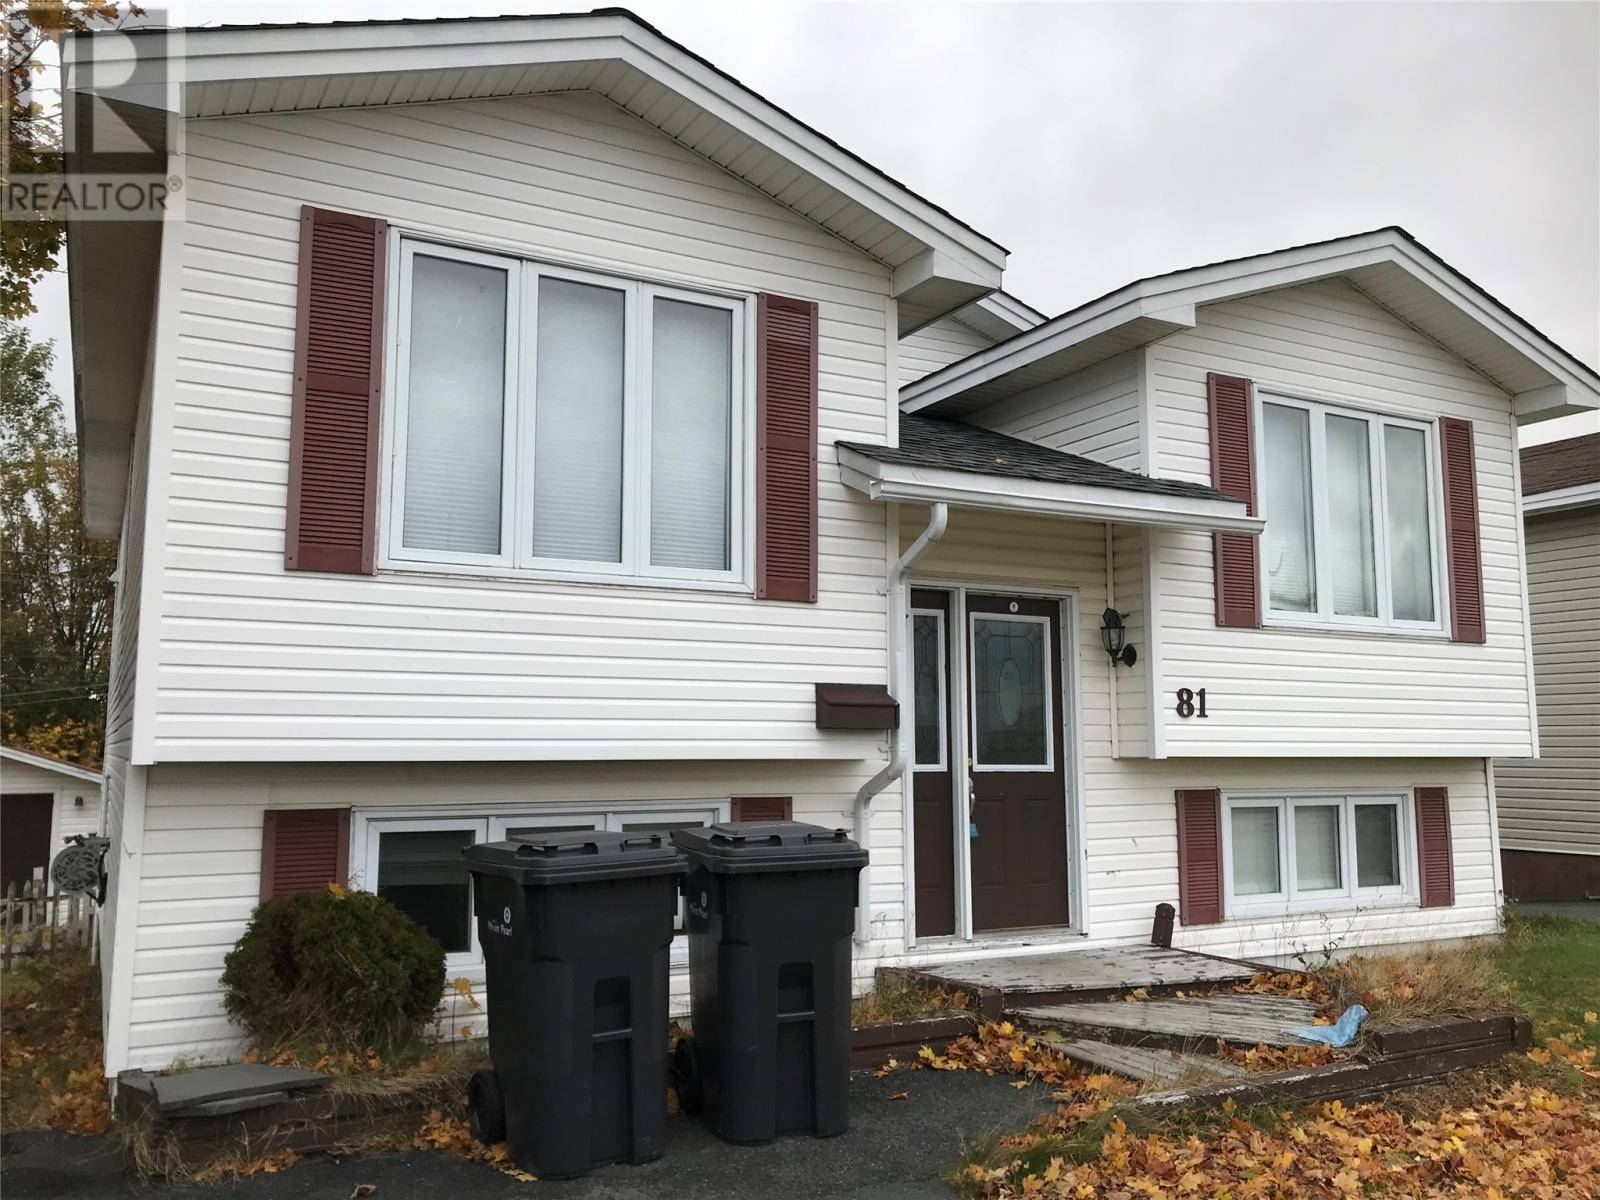 House for sale at 81 Michener Ave Mount Pearl Newfoundland - MLS: 1212371